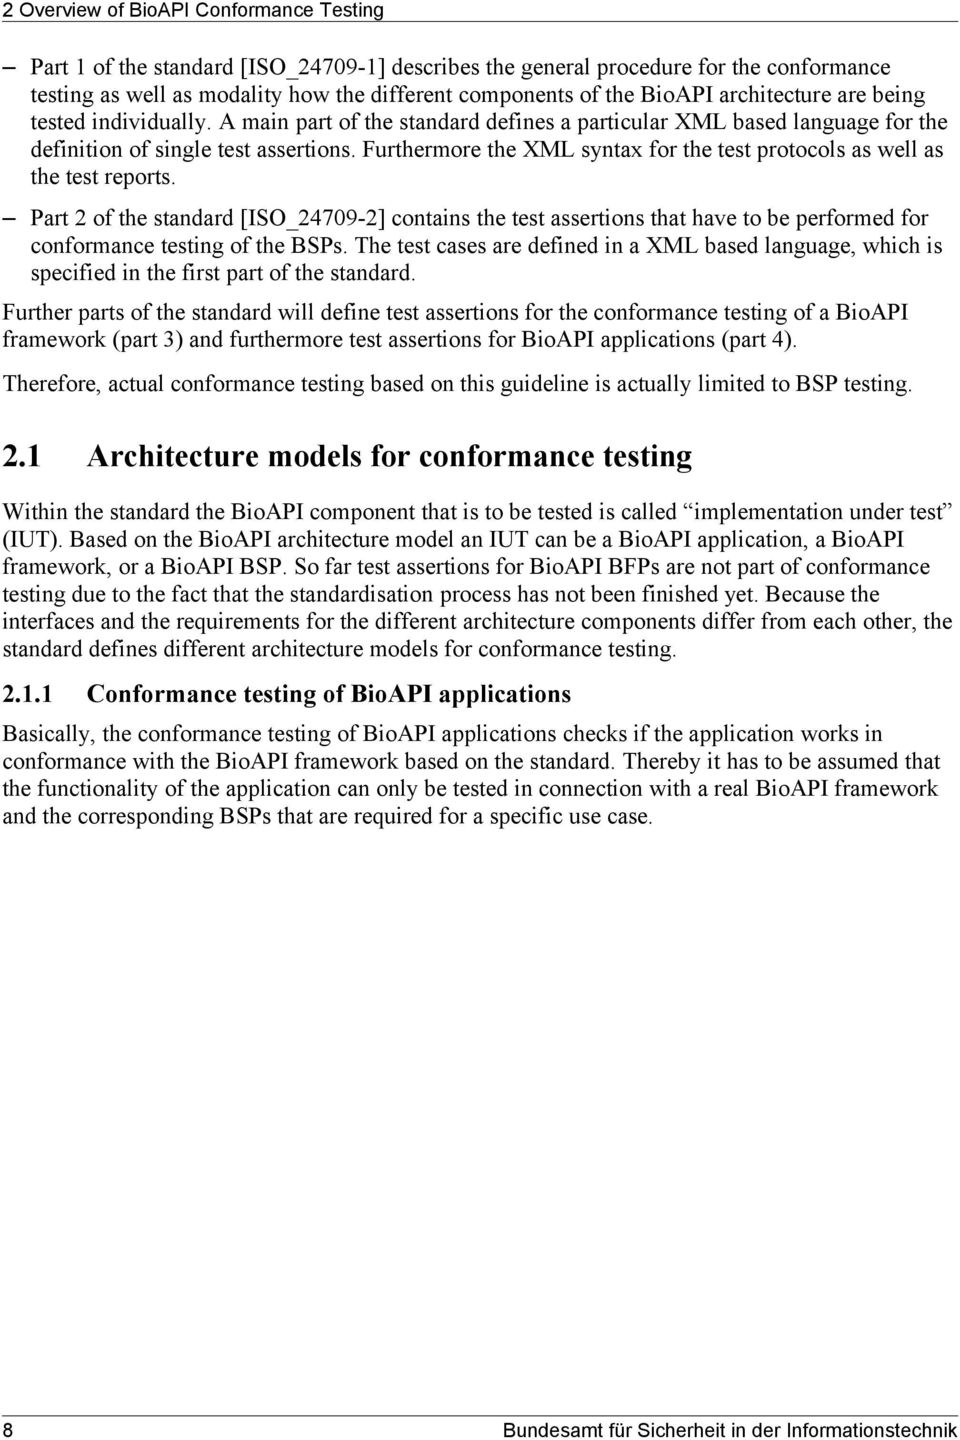 Furthermore the XML syntax for the test protocols as well as the test reports.